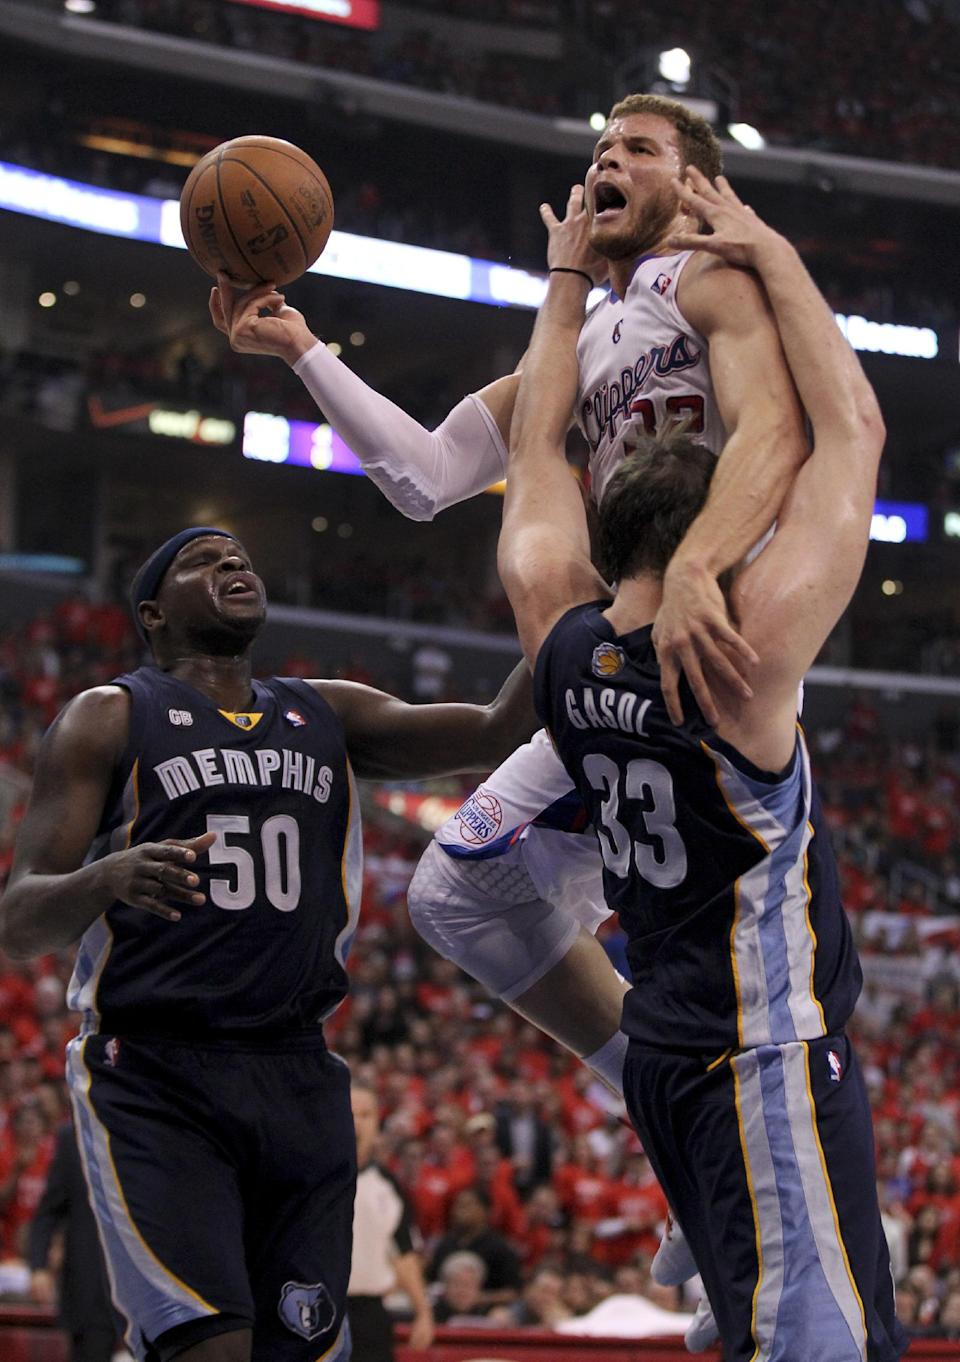 Los Angeles Clippers' Blake Griffin, right, gets called with a charging foul on  Memphis Grizzlies' Marc Gasol as Zach Randolph looks on  during the first half of a NBA first-round playoff basketball game in Los Angeles, Monday, May 7, 2012. (AP Photo/Chris Carlson)